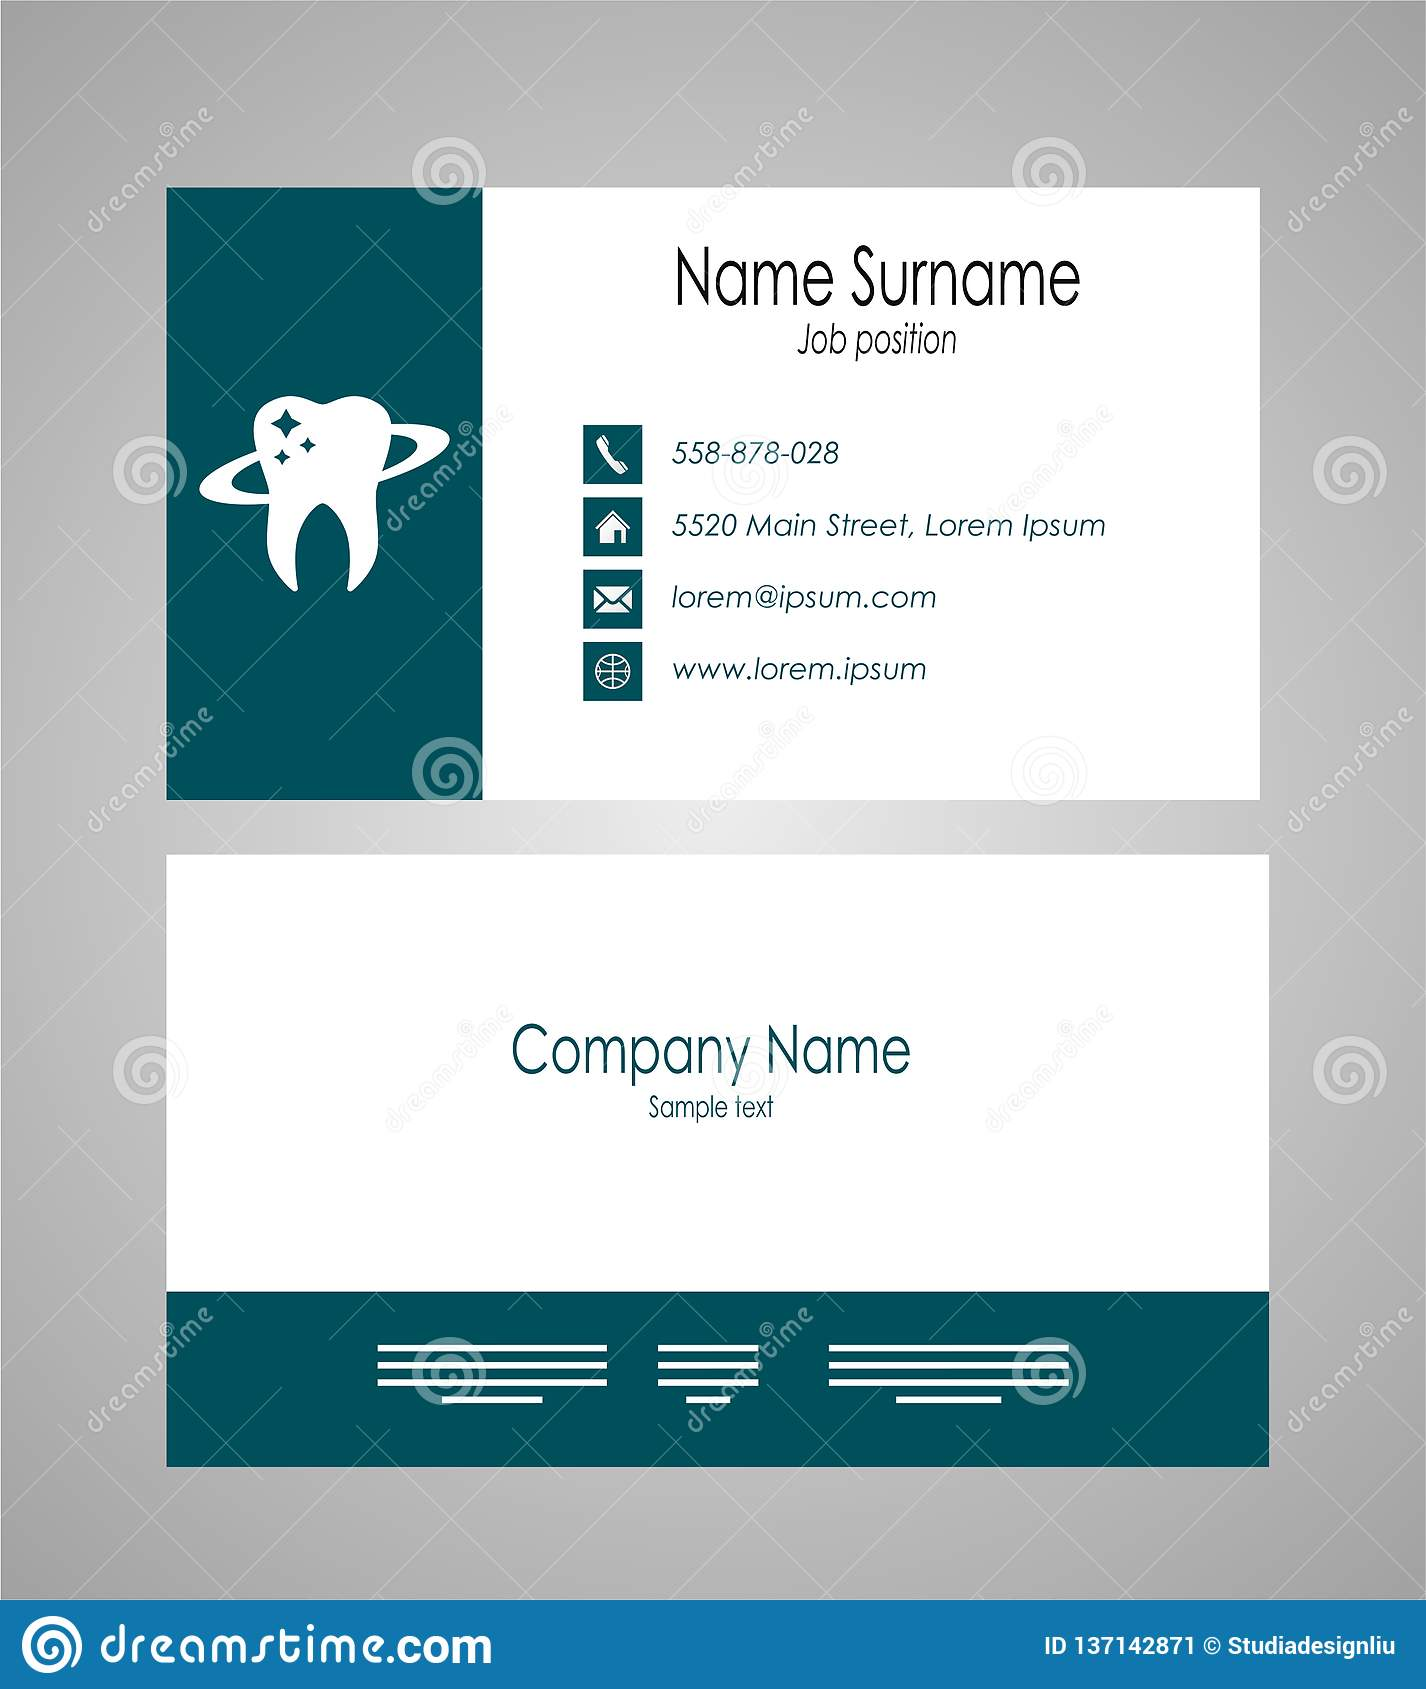 Business Card Template For Doctors | Dental Business Card Template Vector Illustration Stock Vector